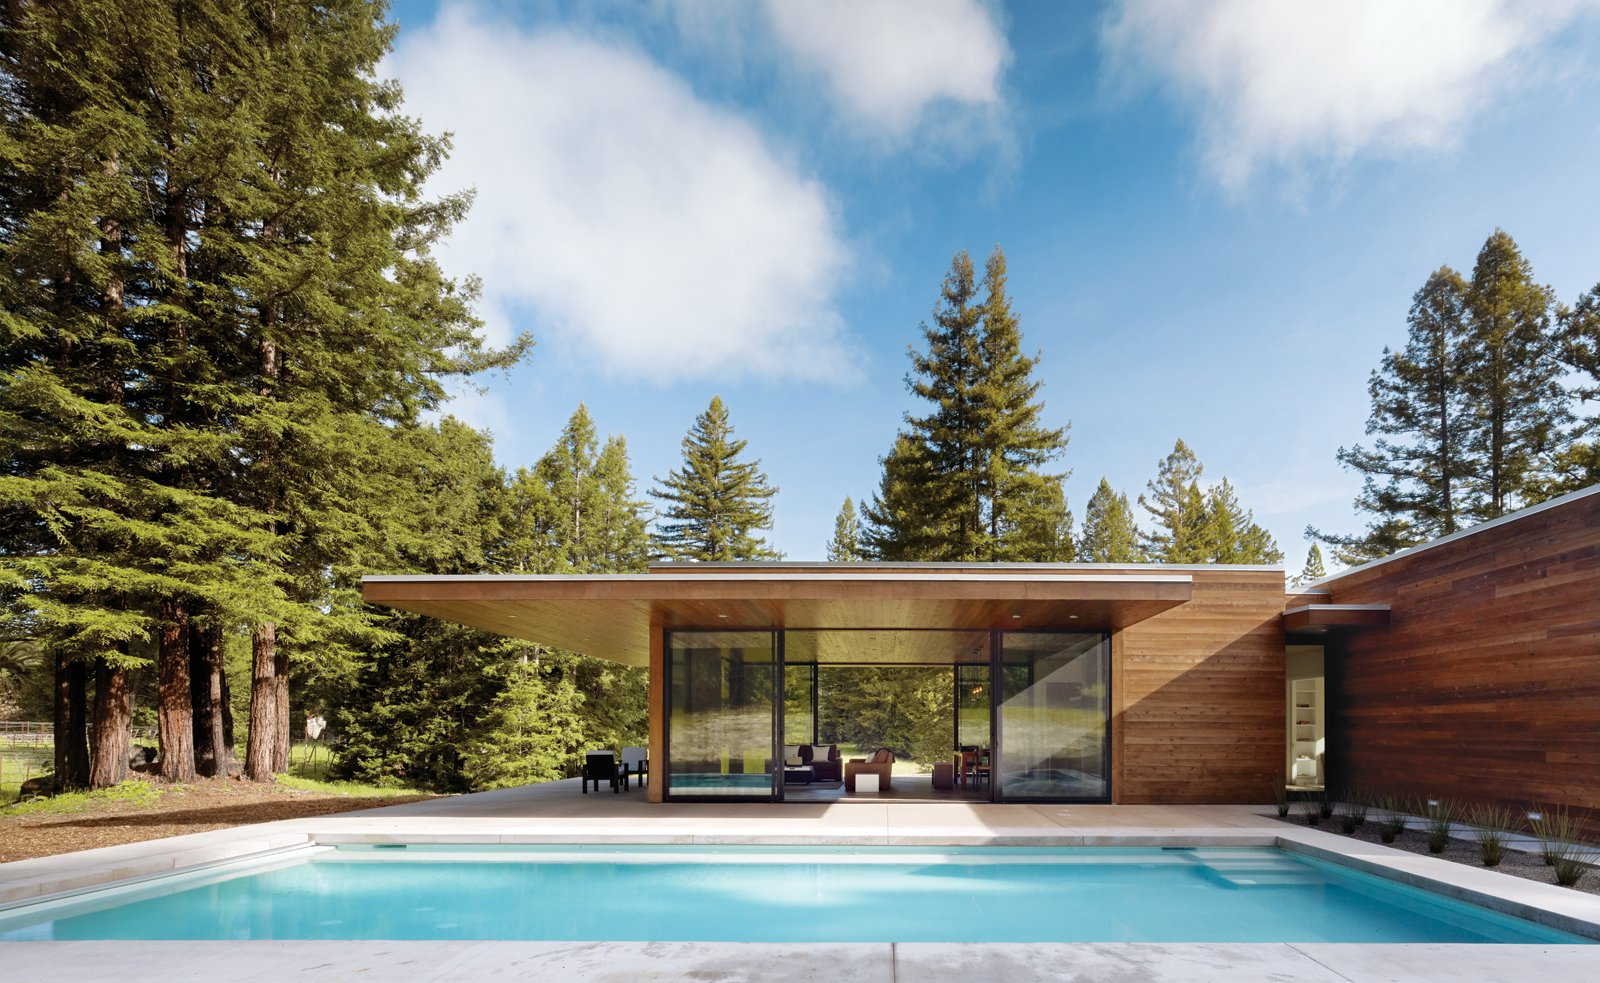 Large Pools, Tubs, Shower, Concrete Pools, Tubs, Shower, Swimming Pools, Tubs, Shower, Large Patio, Porch, Deck, Concrete Patio, Porch, Deck, Exterior, House Building Type, and Wood Siding Material Two linked 1,000-square-foot pavilions are greater than a sum of their parts. The simply detailed, taut, flat-roofed home's two wings form a T-shape. One wing runs north to south, parallel to a pool, and contains the open-plan living spaces. Photo by Matthew Millman.  Photo 1 of 5 in This Couple Achieves Their Glass House Goals